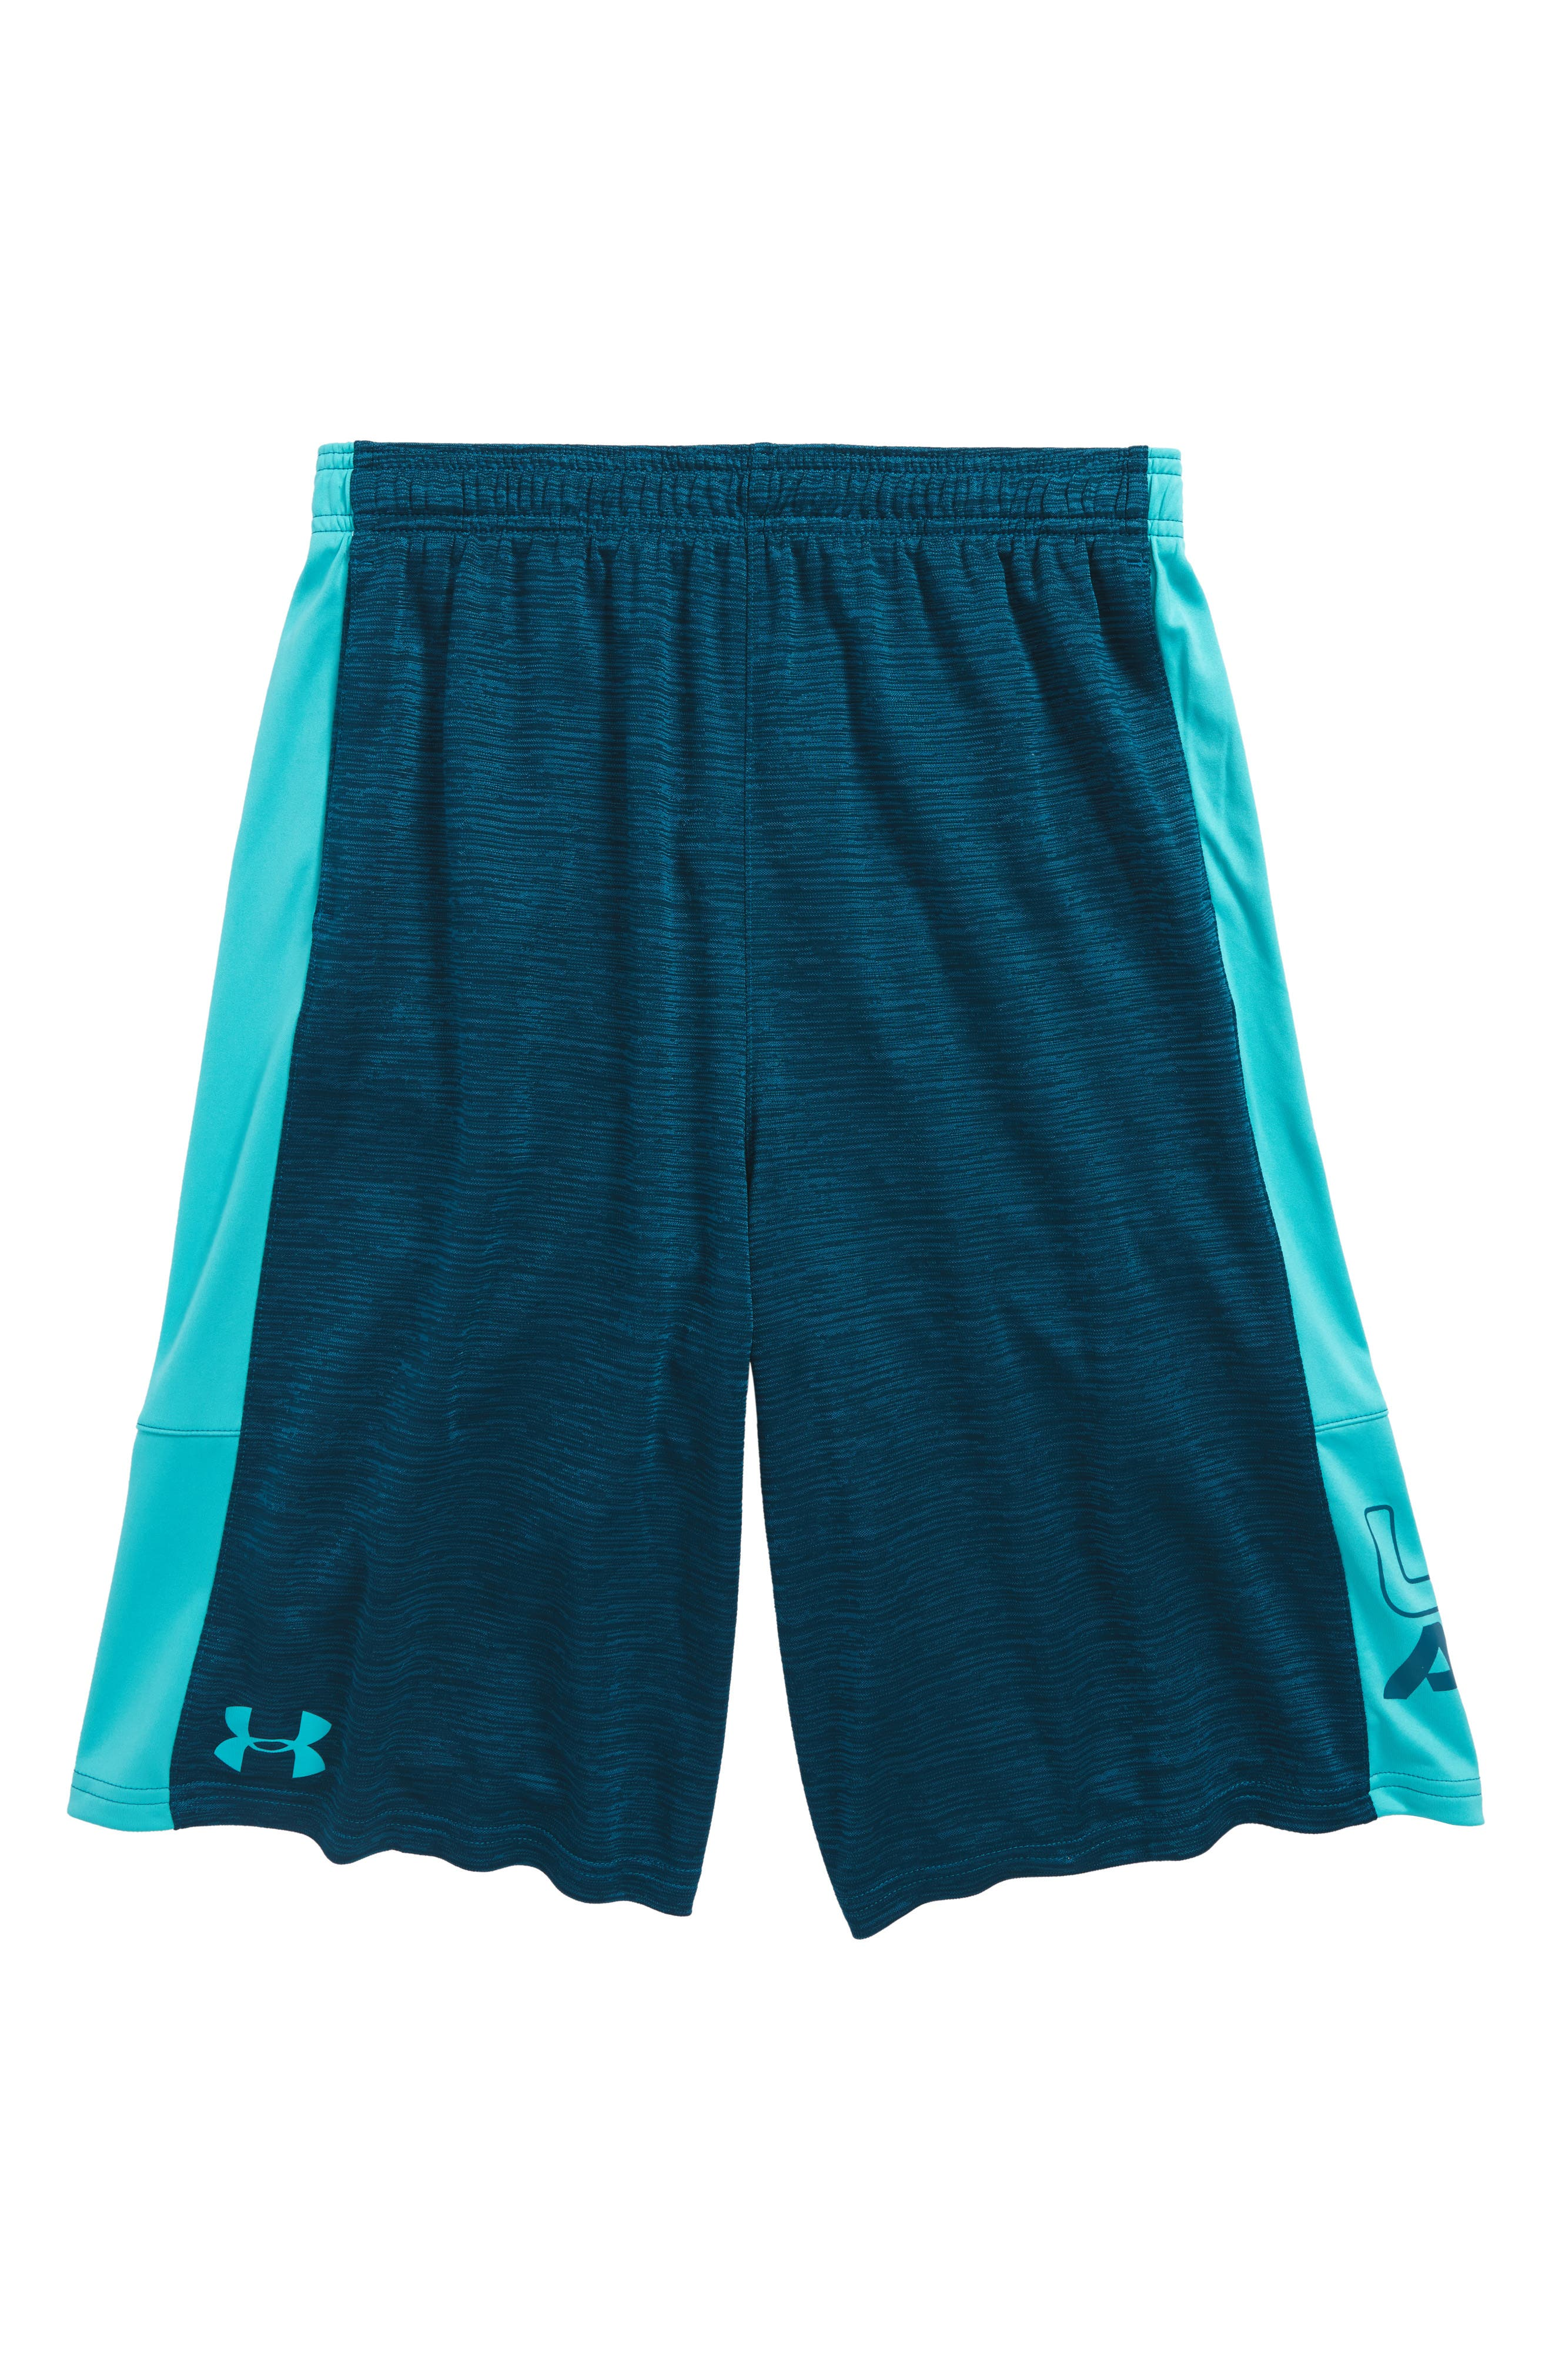 Stunt HeatGear<sup>®</sup> Shorts,                         Main,                         color, Troumaline Teal/ Teal Punch